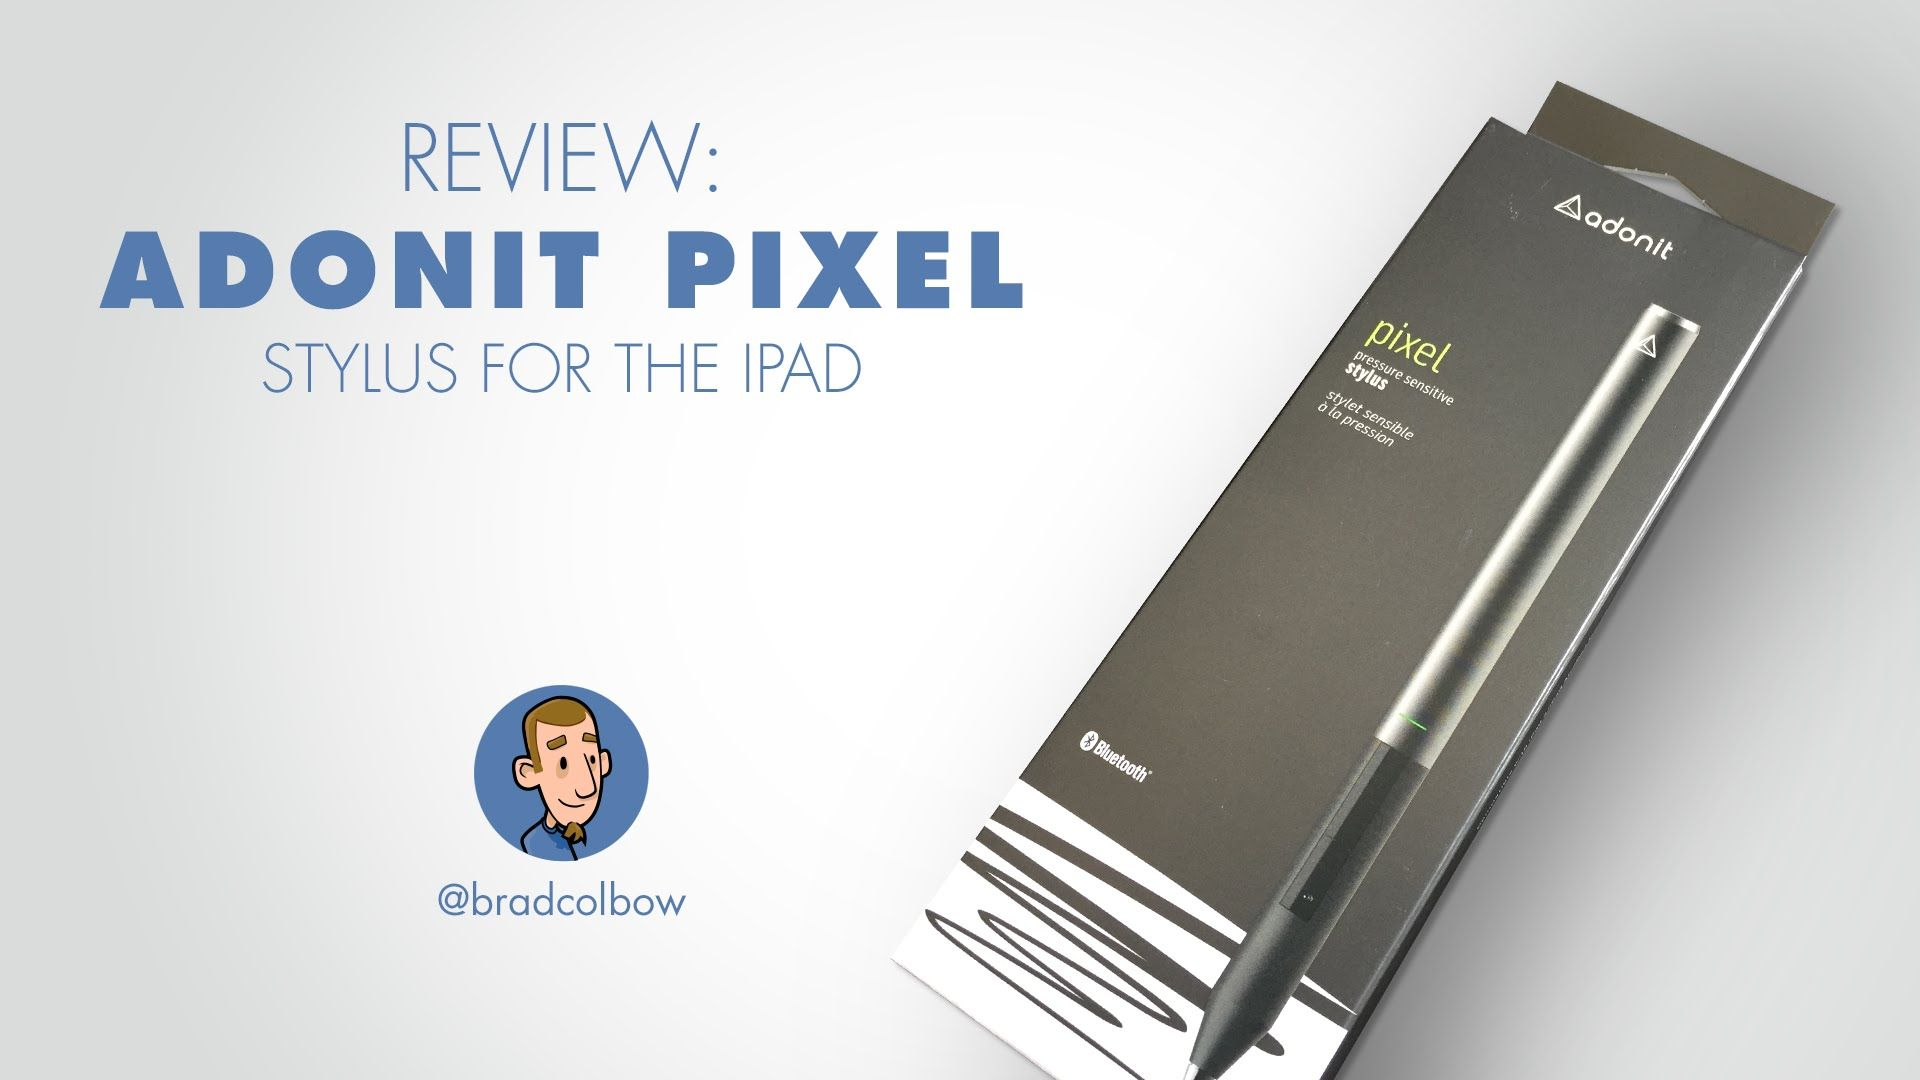 Review of the Adonit Pixel: An Illustrator's Take